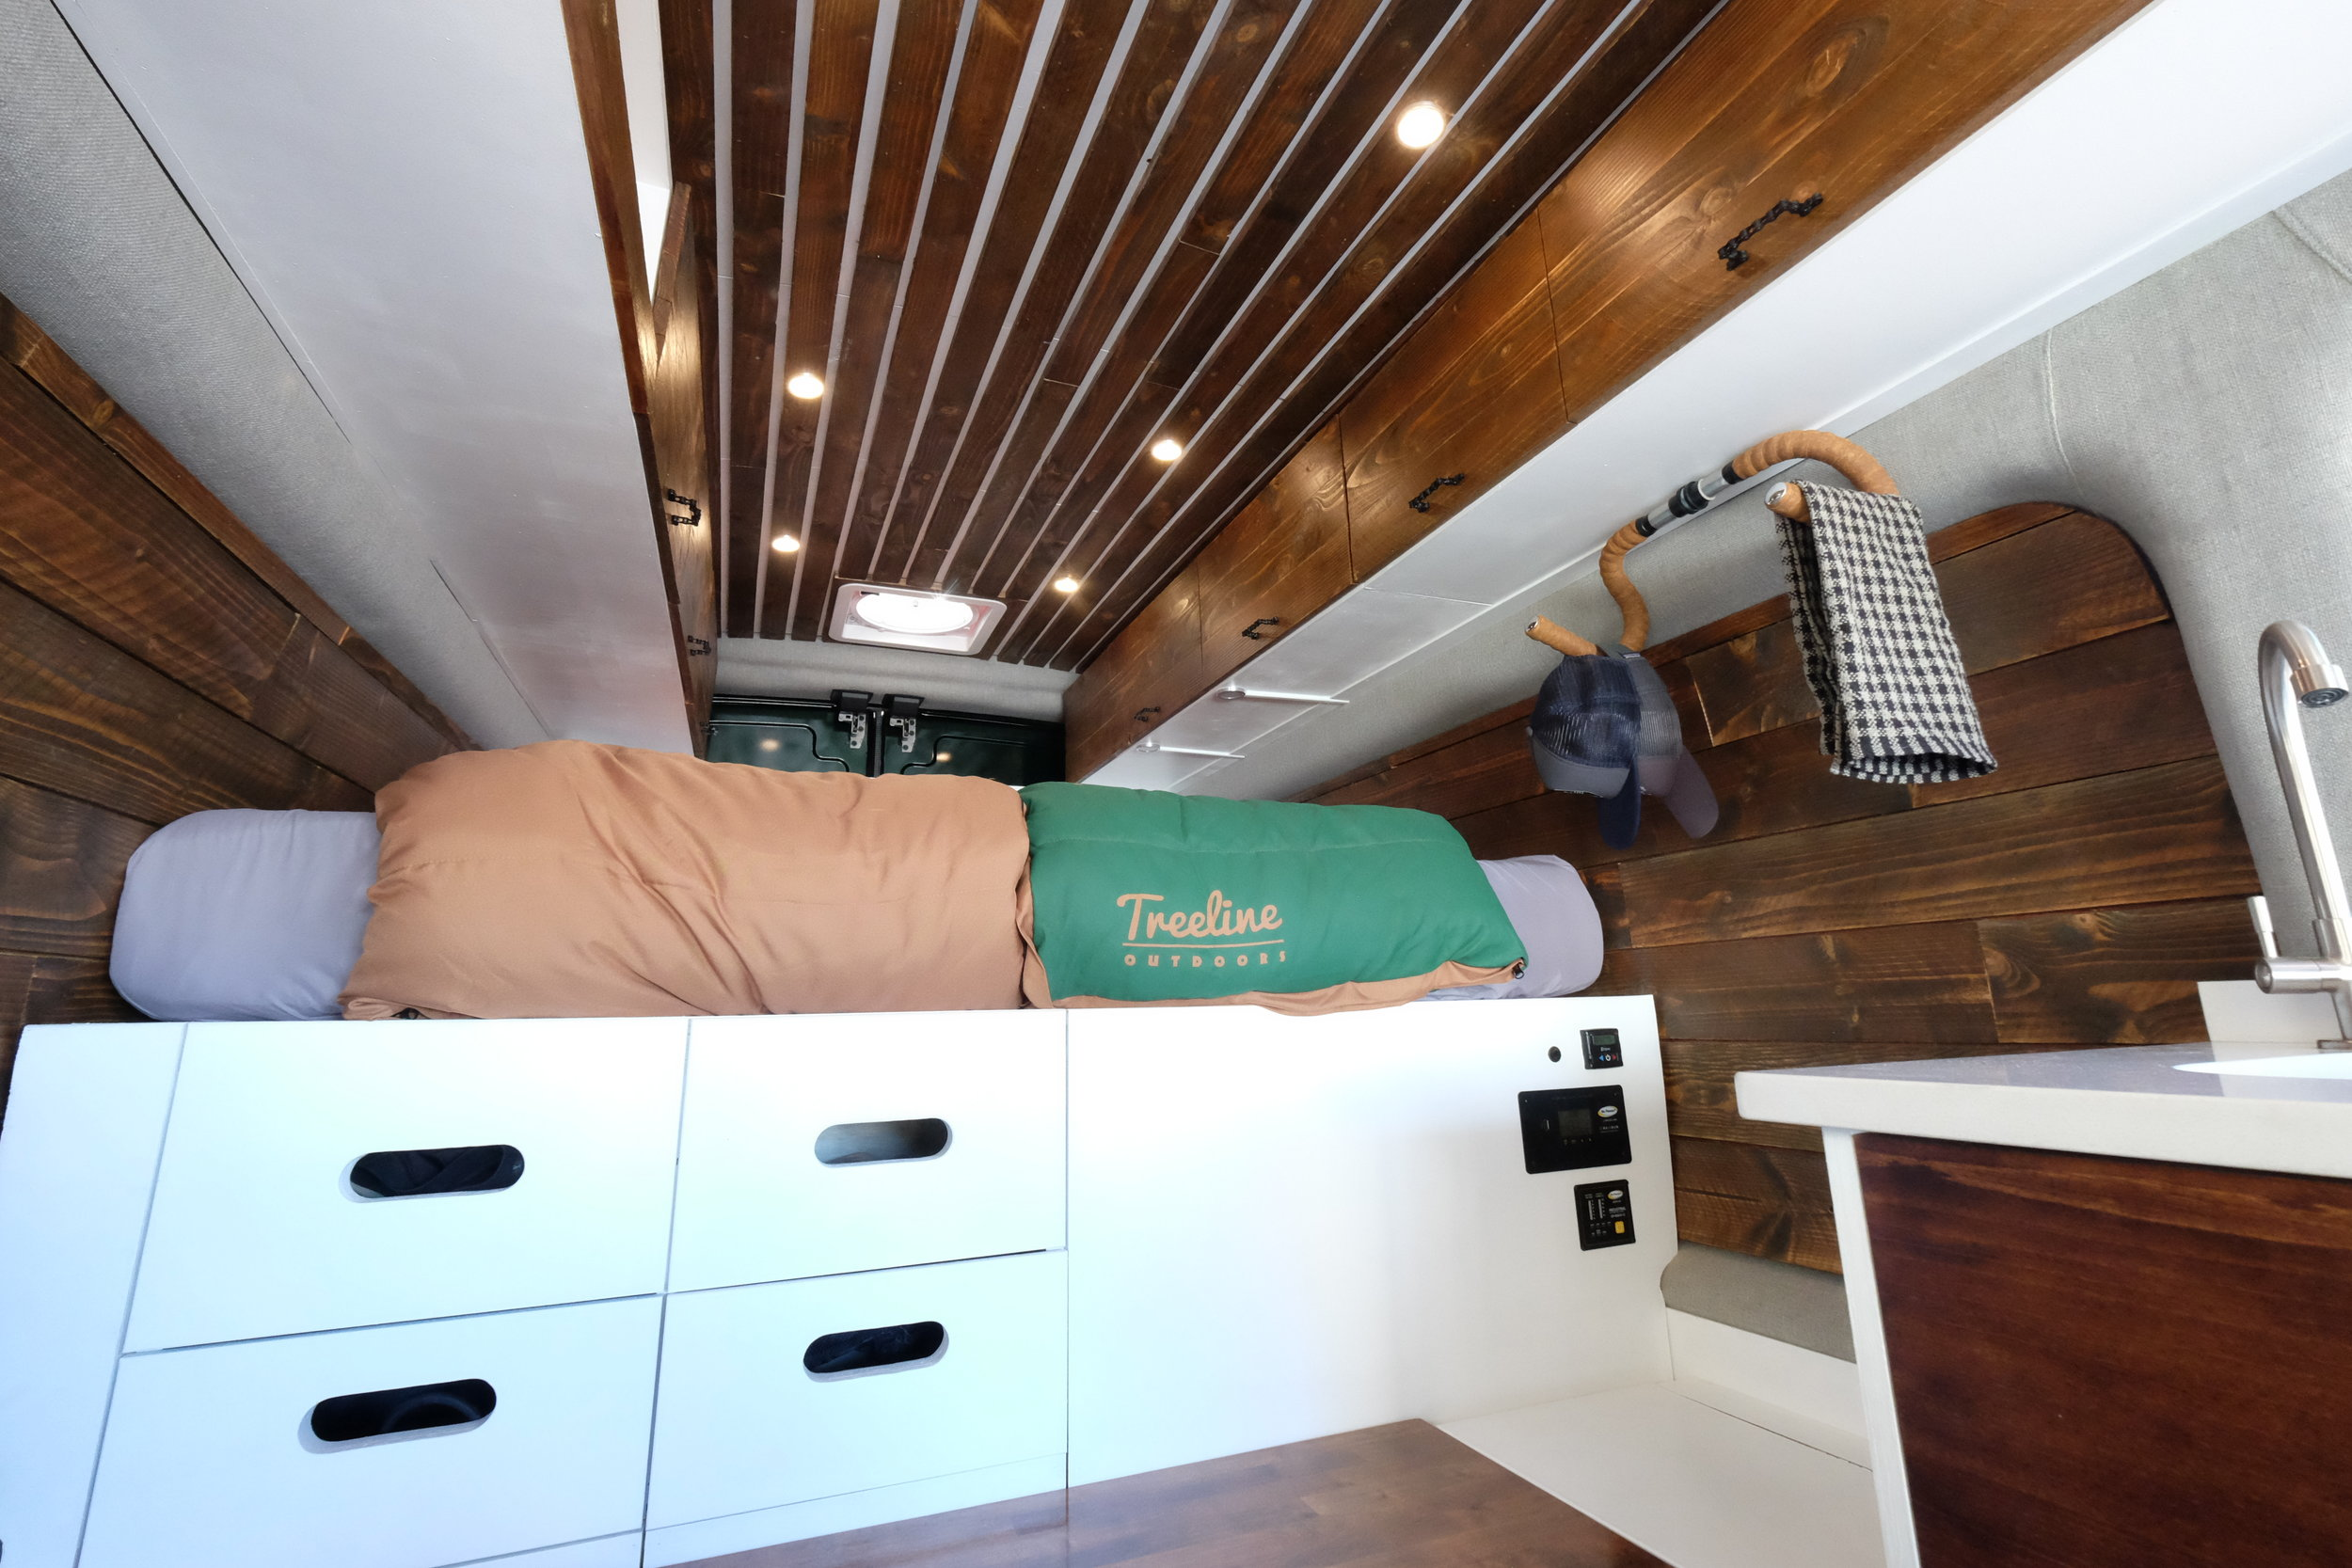 Dan wanted a cabin like space that was not only handsome, but also includes all of the amenities for life on the road. His Transit is packed with storage from under-bed shelving to upper cabinets that run the full length of the van's interior.